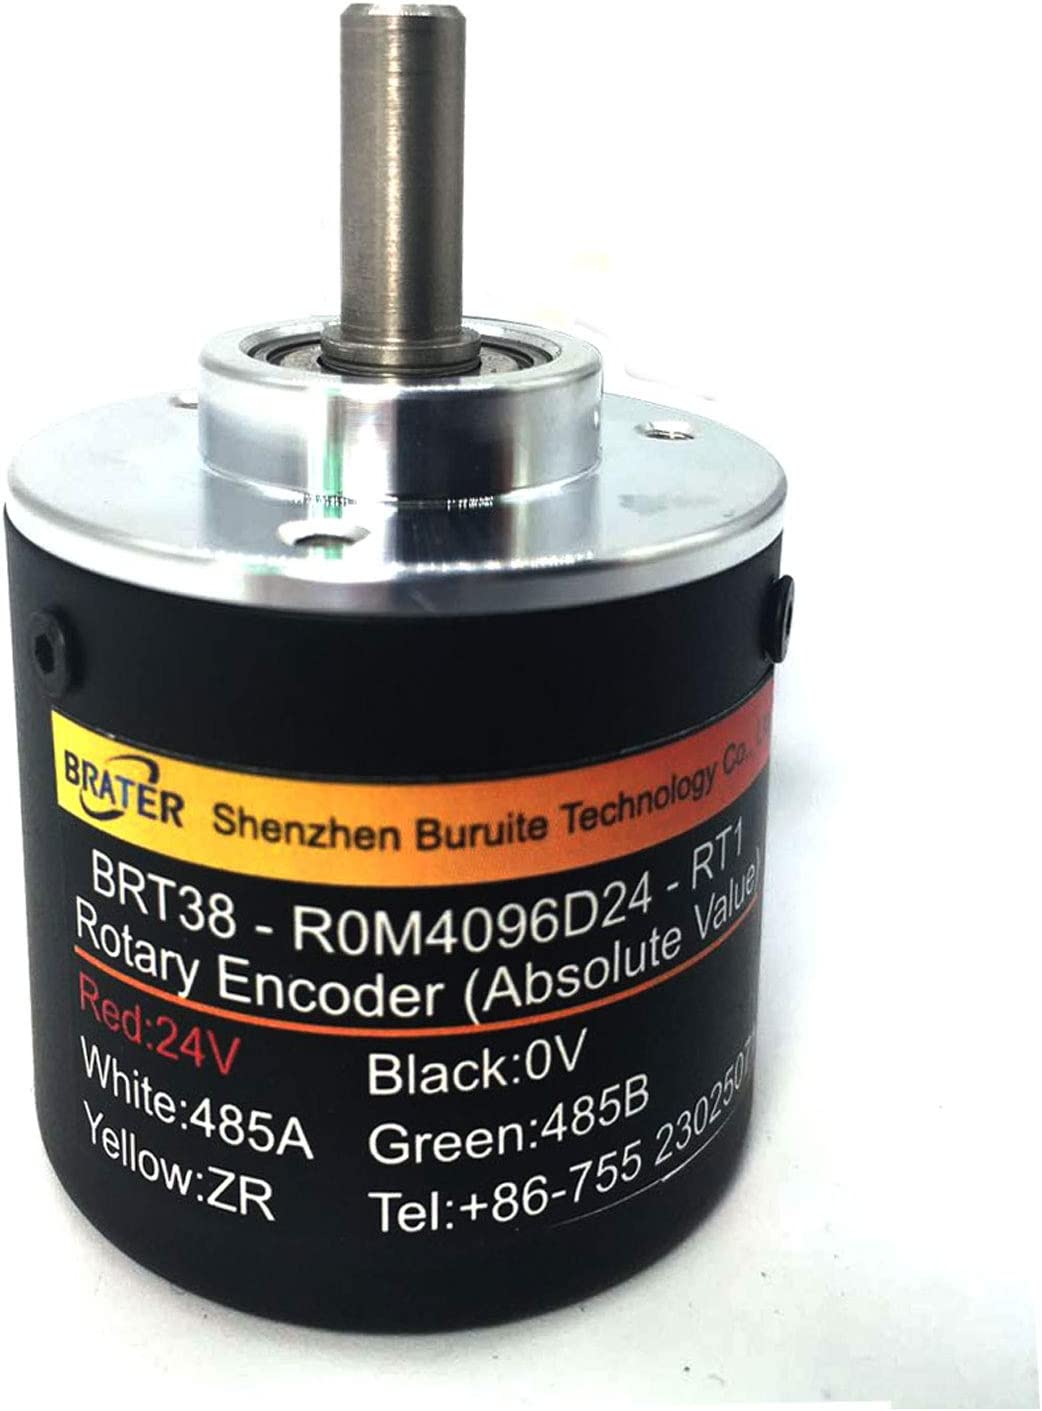 brater Rotary Absolute Rotary Encoder BRT38-C0M1024D24-RT1 24 Turns Power-Off Memory Non-incremental Style Gear Mechanical Structure no Power Supply 2 Years Warranty